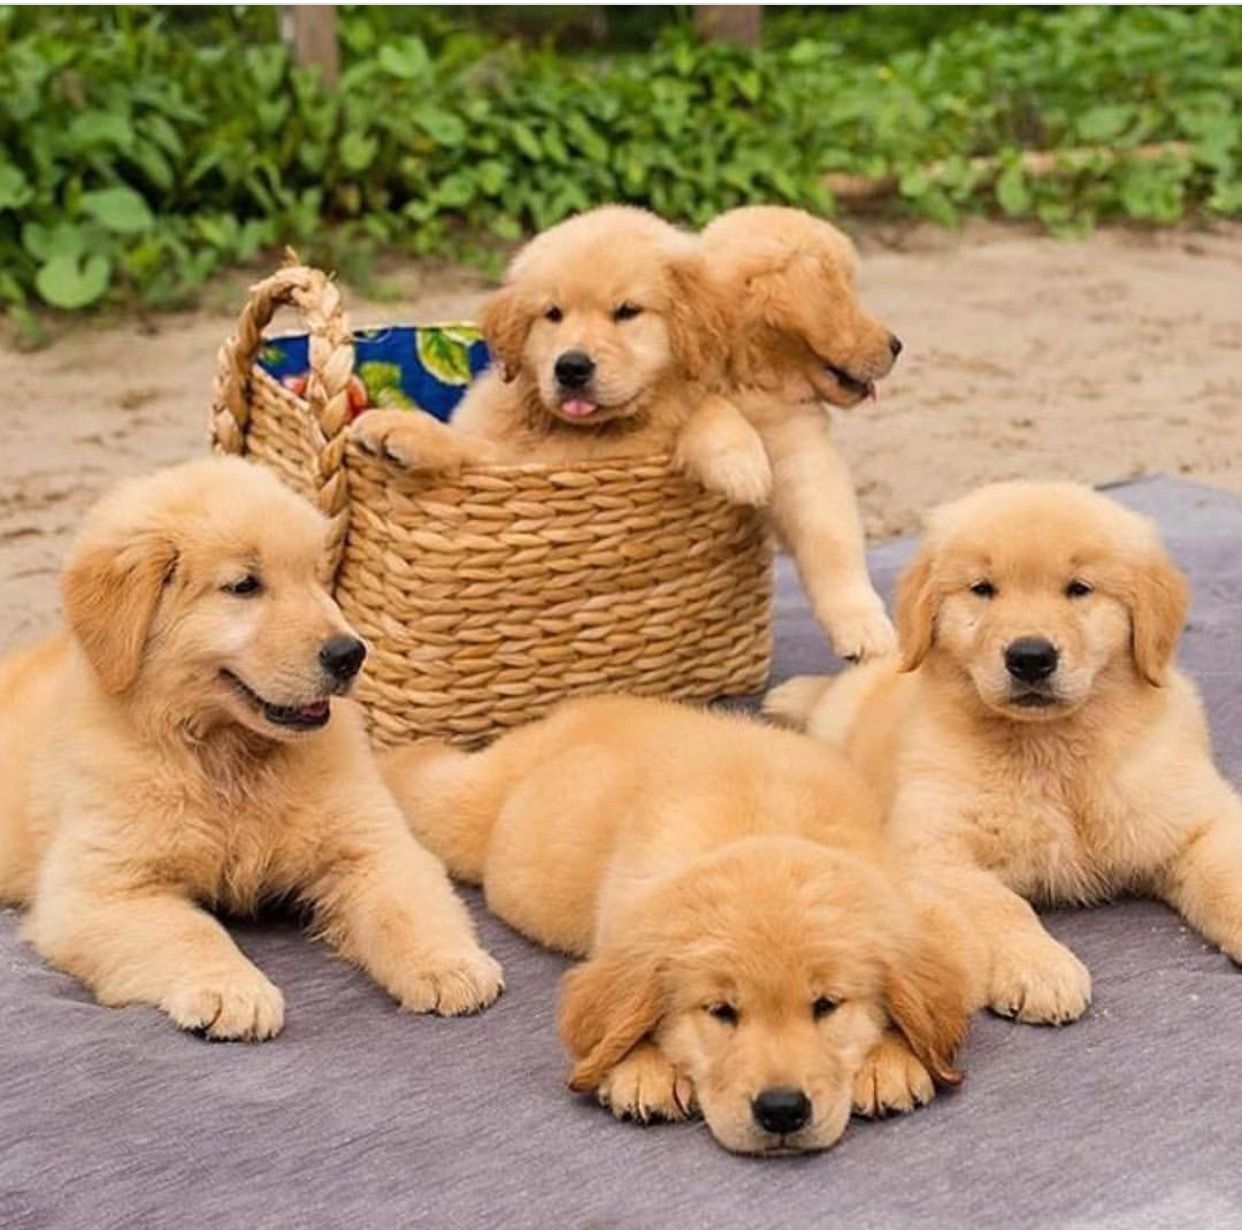 Pin By Catherine On Animal Awe Cute Dogs Cute Puppies Retriever Puppy